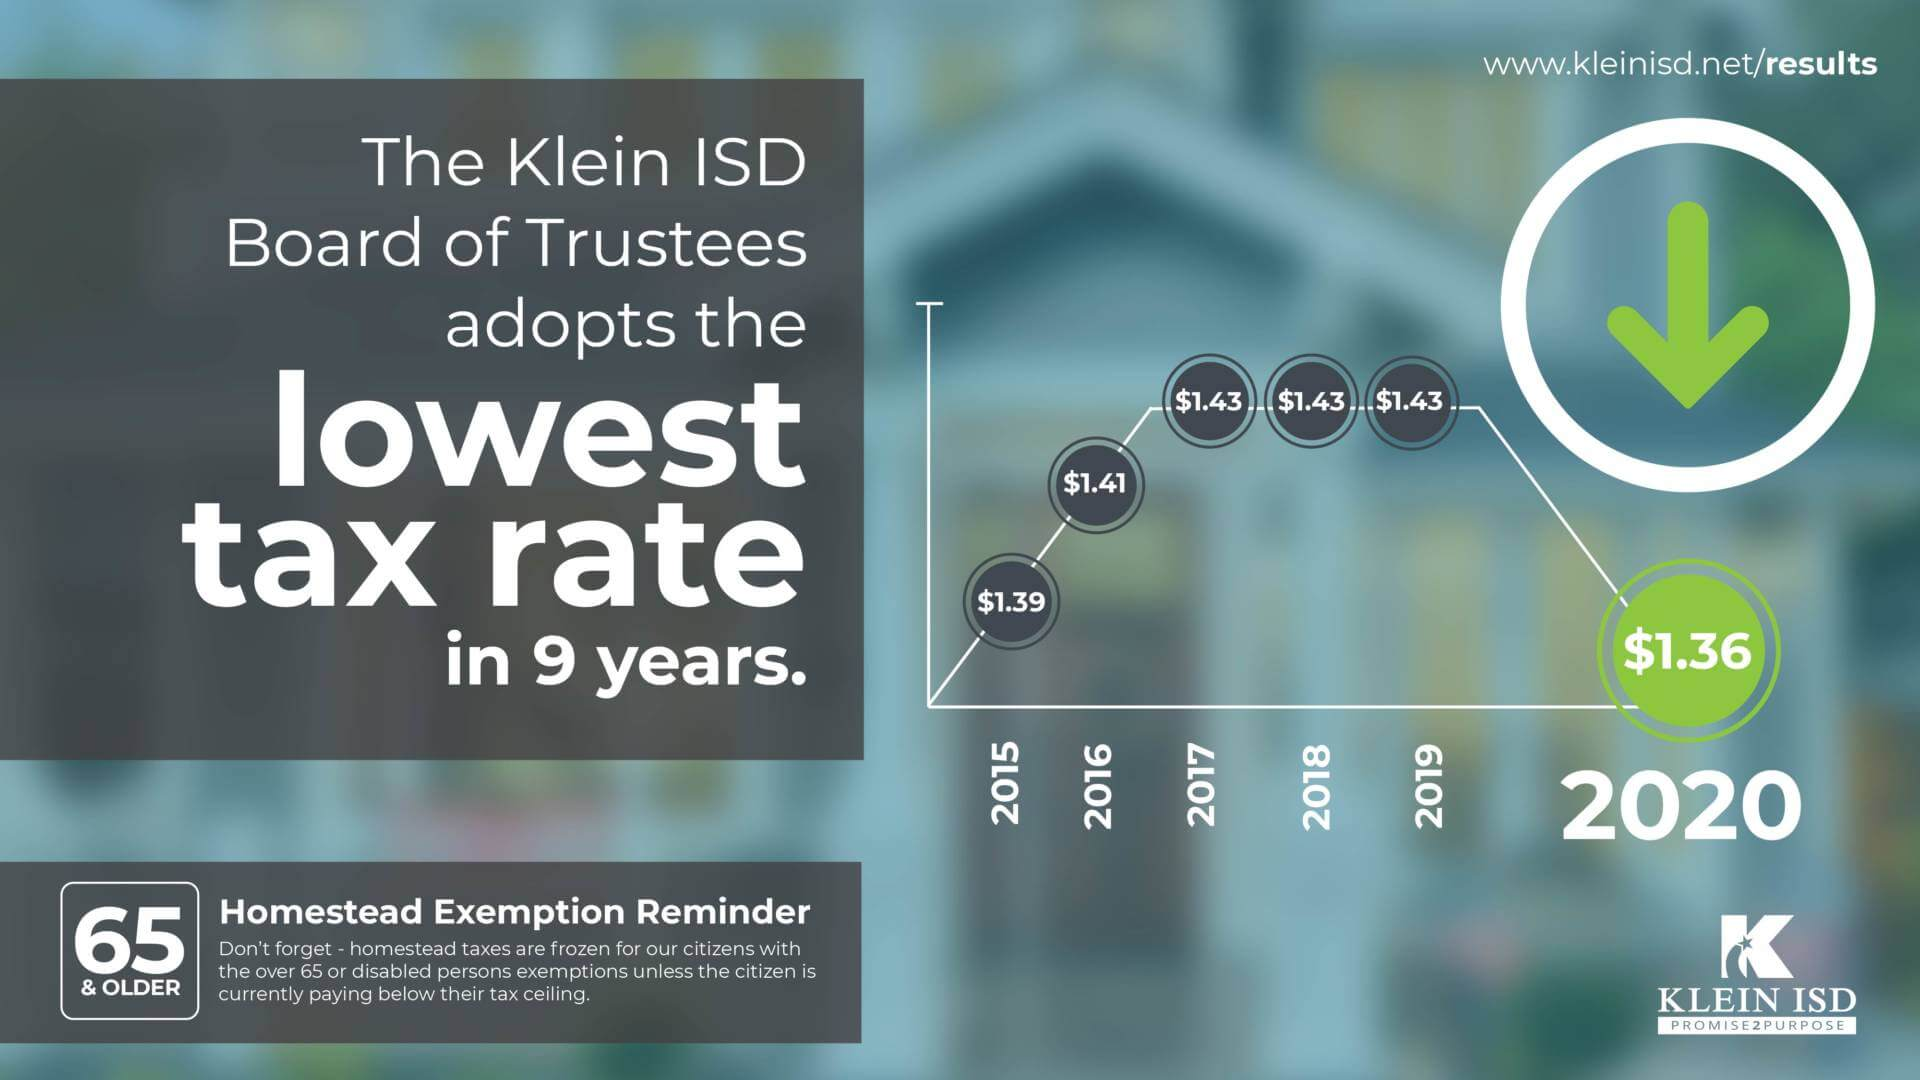 Klein ISD Board of Trustees Adopts Lowest Tax Rate in 9 Years